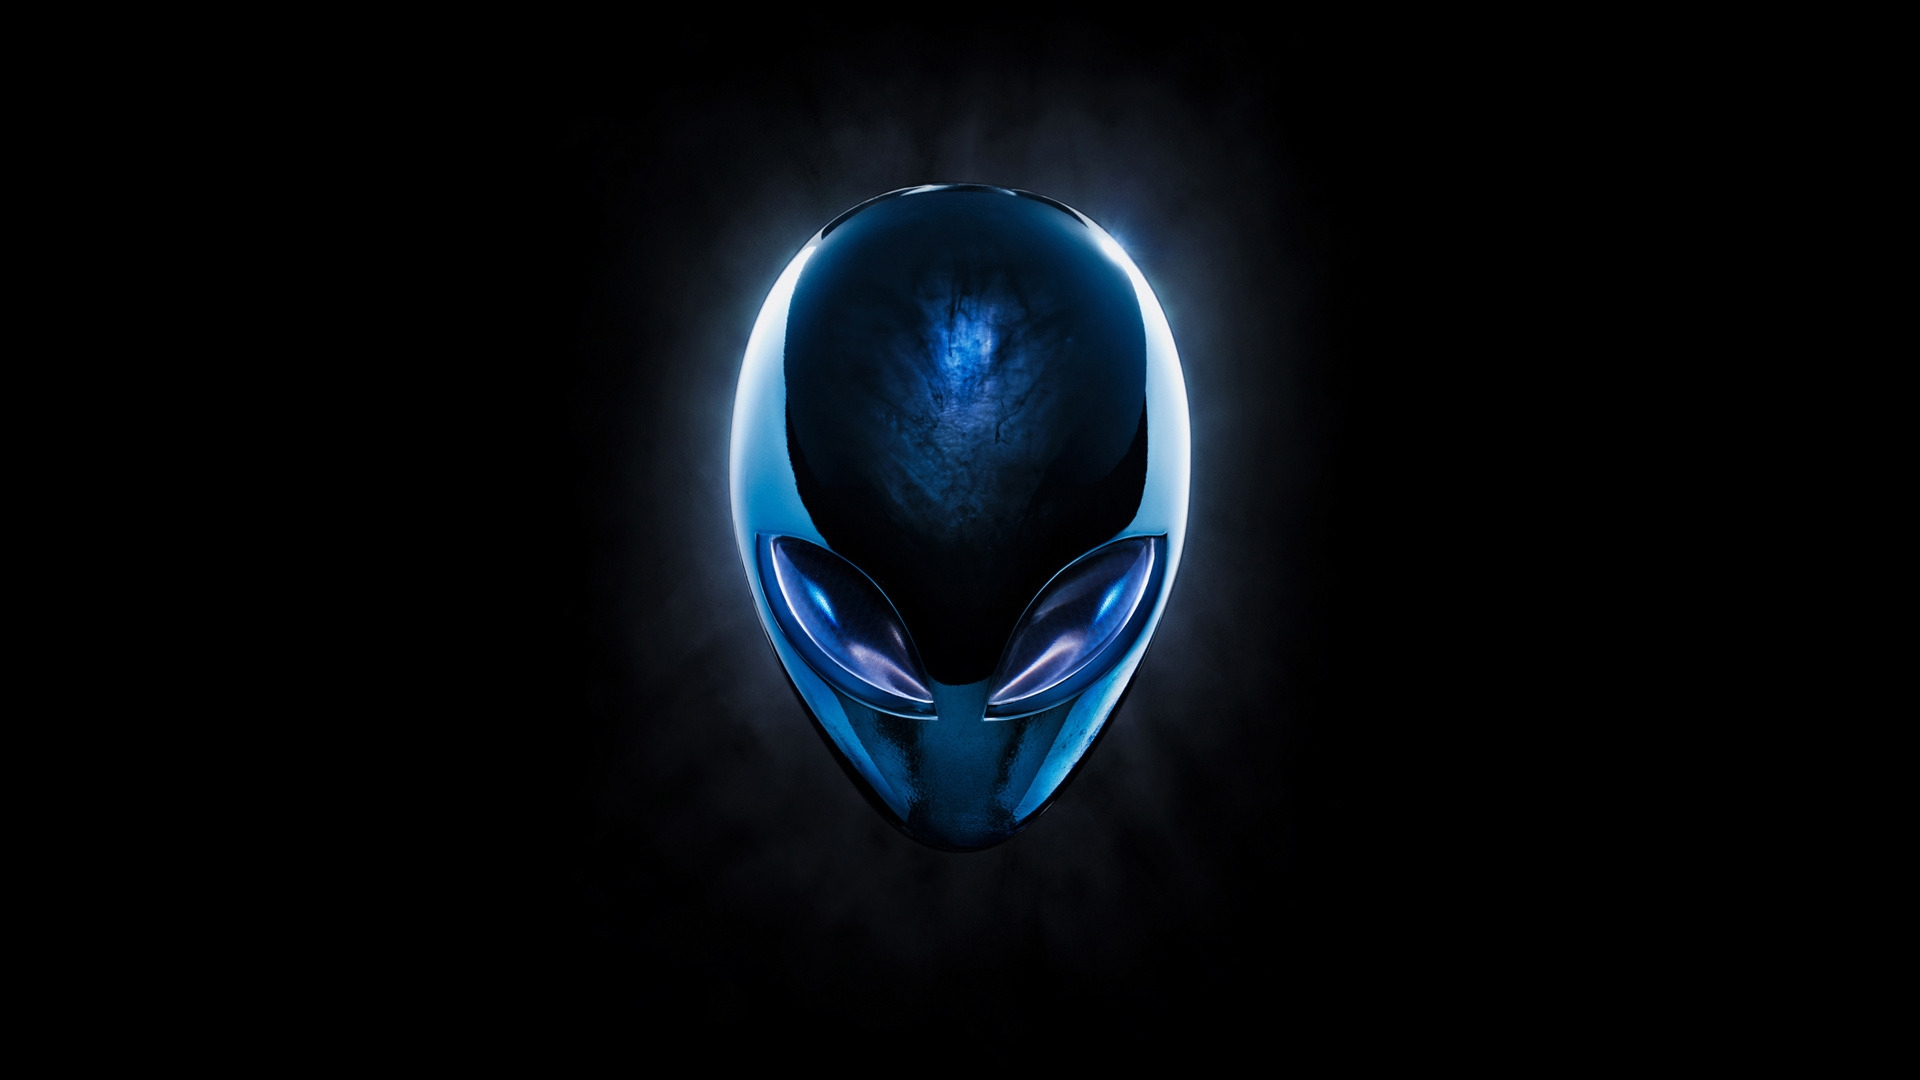 Cute Alien Computer Wallpapers Alienware Hd Hd Logo 4k Wallpapers Images Backgrounds